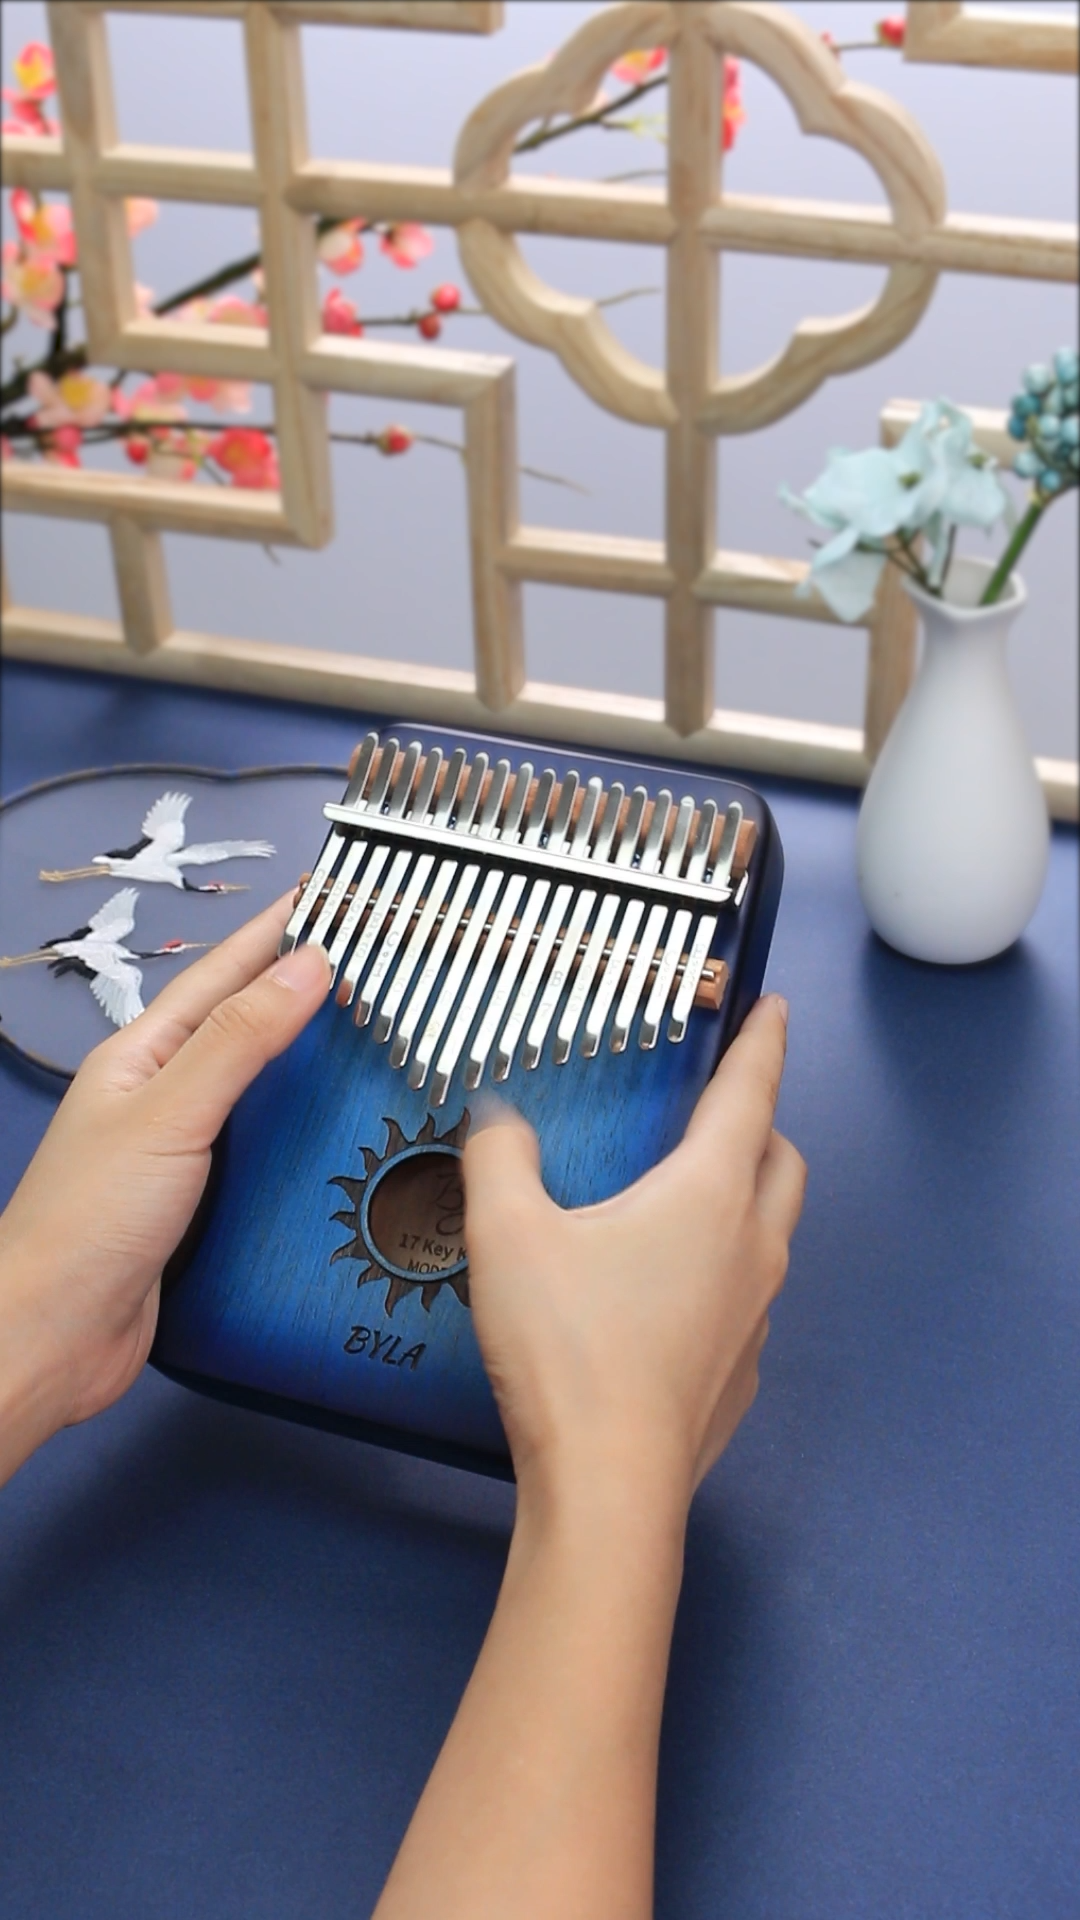 Percussion african 17 keys kalimba musical instrument thumb piano gradient color